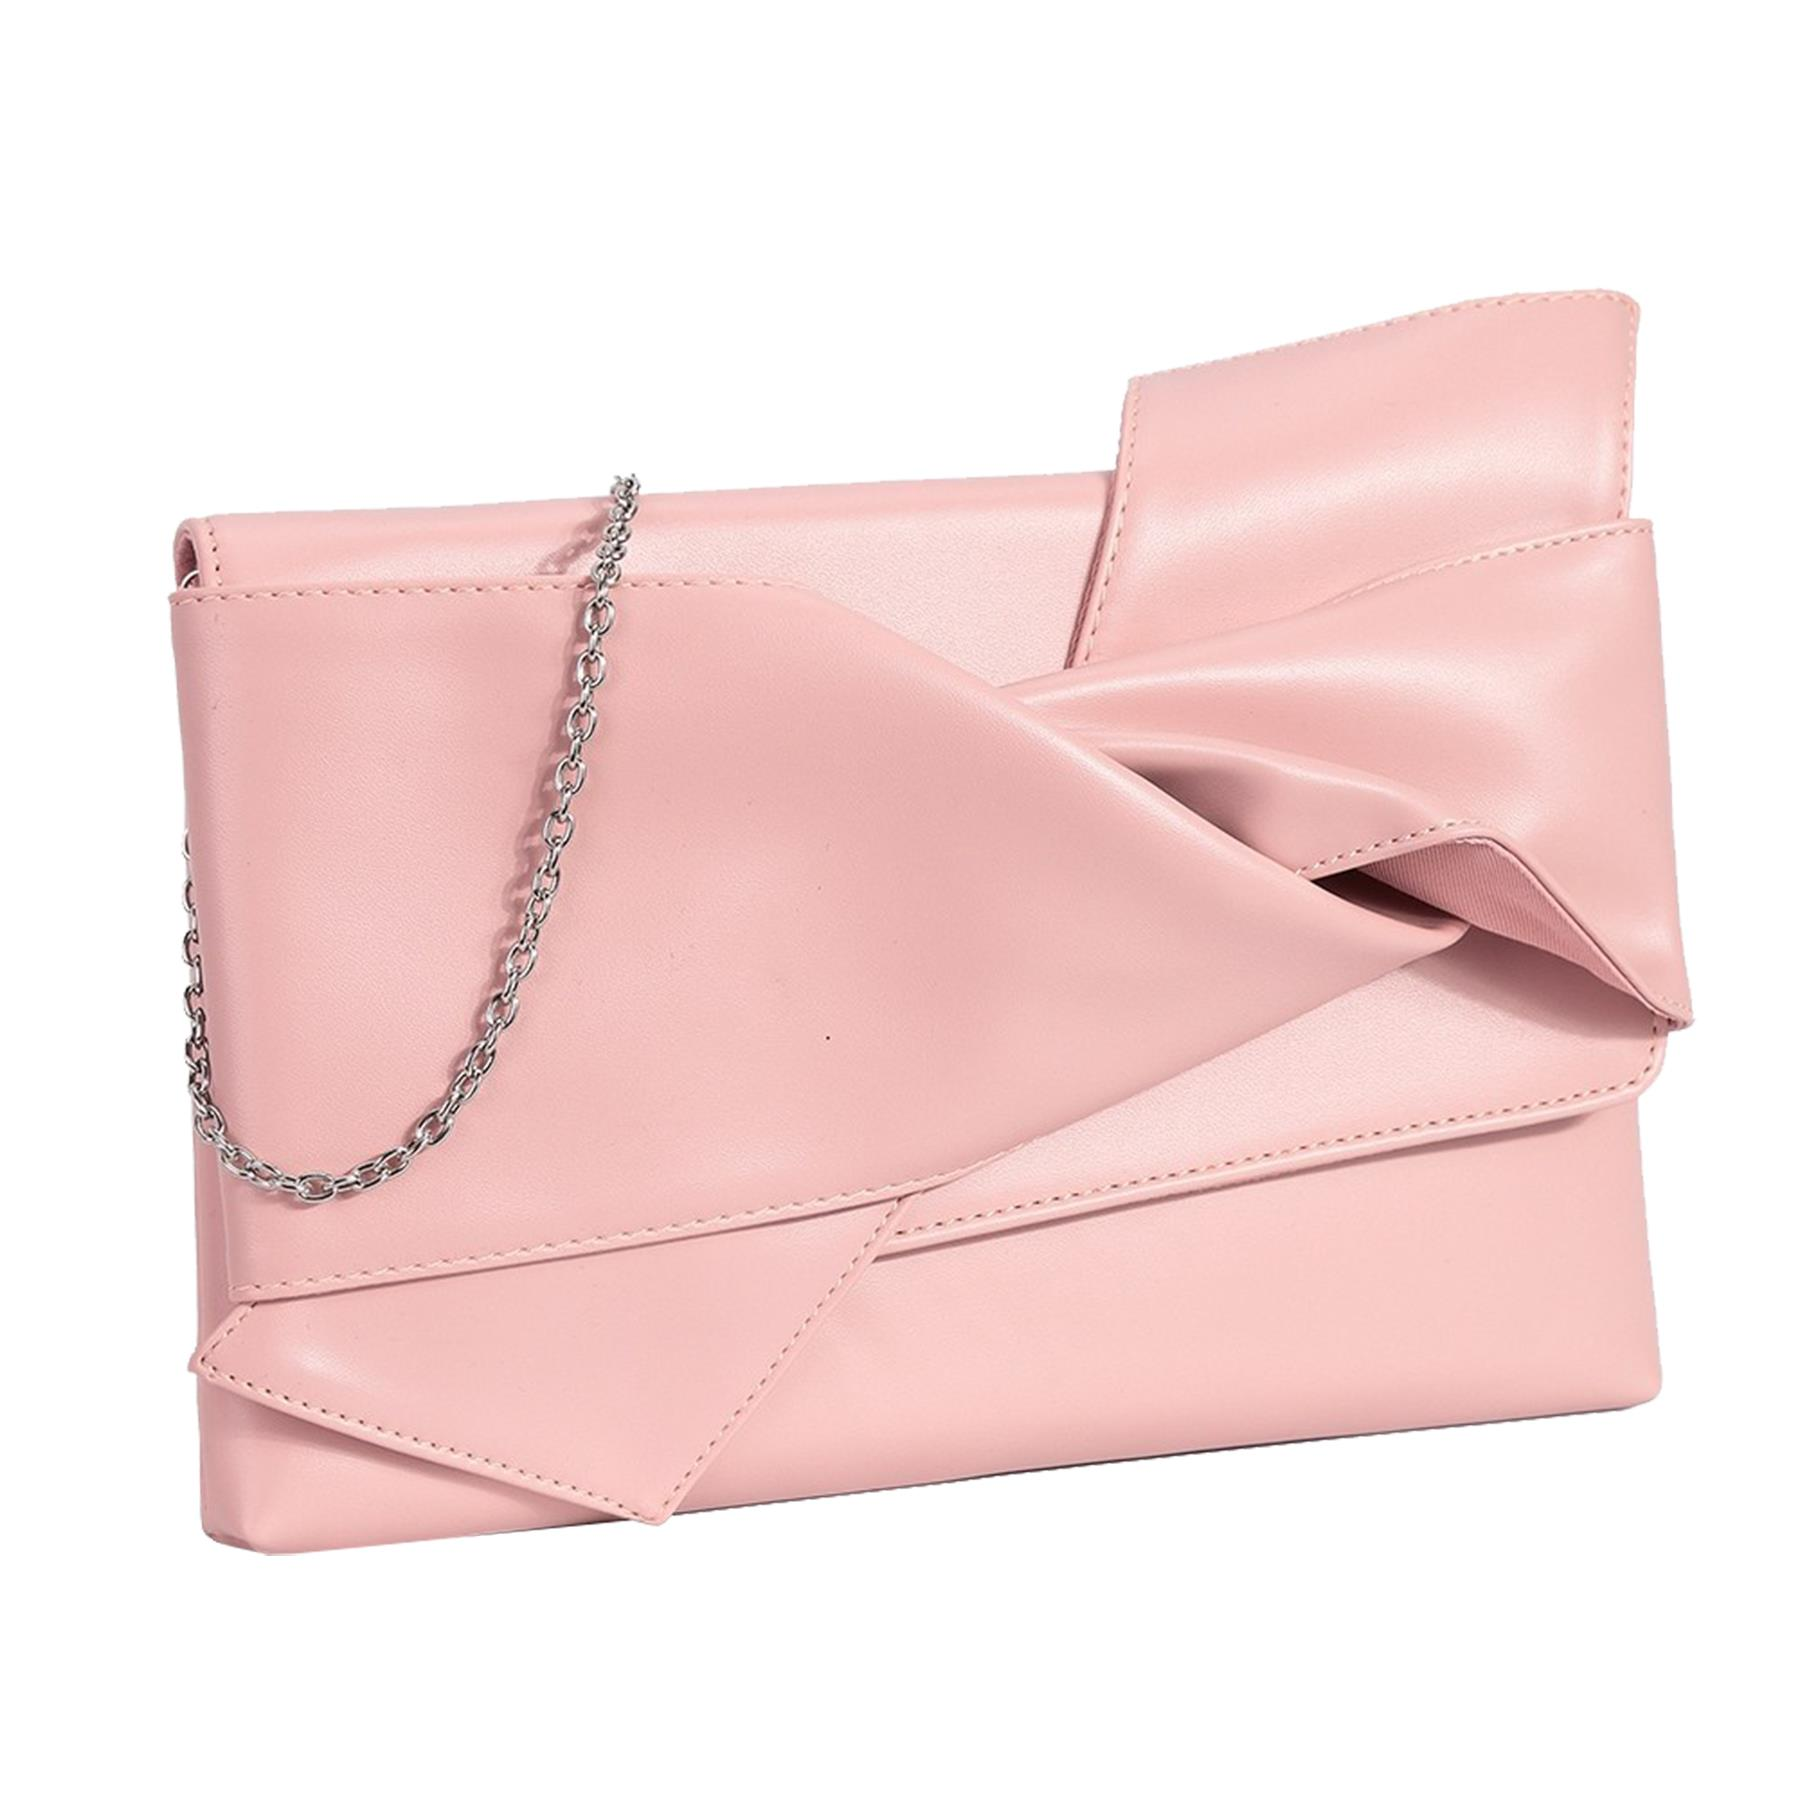 New-Knot-Detail-Shiny-Synthetic-Leather-Ladies-Party-Clutch-Bag-Purse thumbnail 6